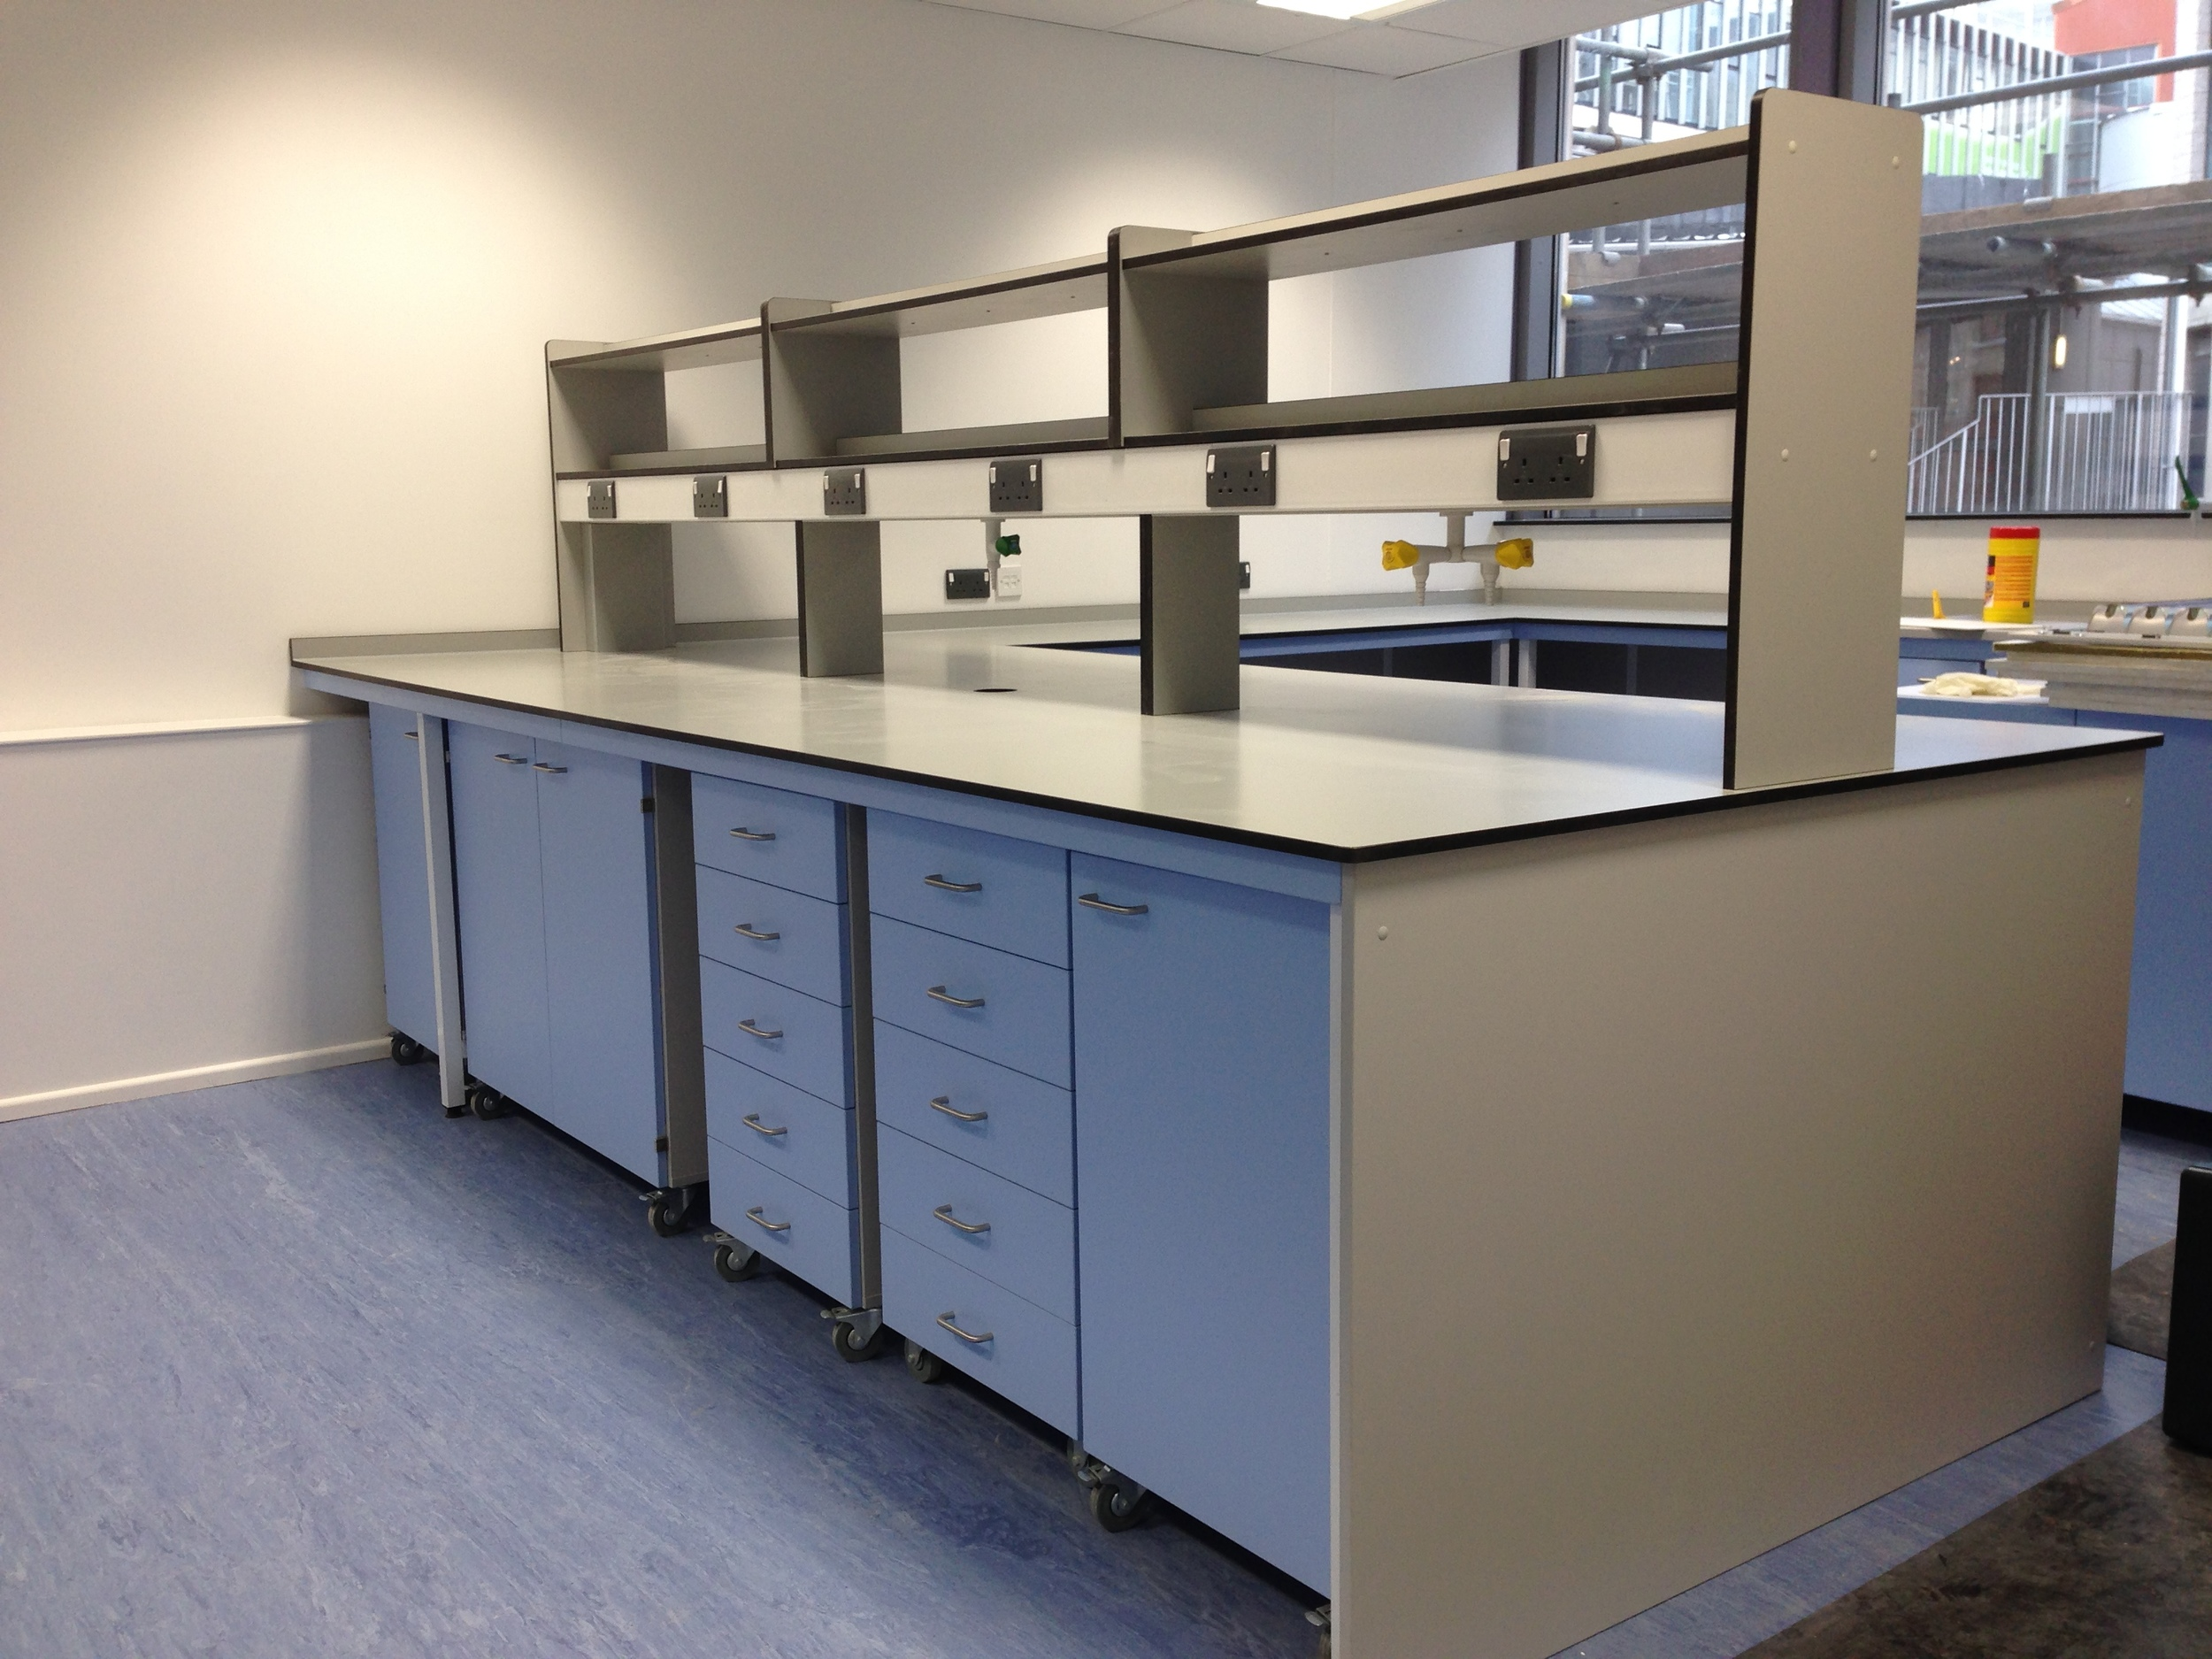 AJT Laboratory Furniture design trespa Toplab Sxchool Refurb School Furniture Associated Joinery Techniques